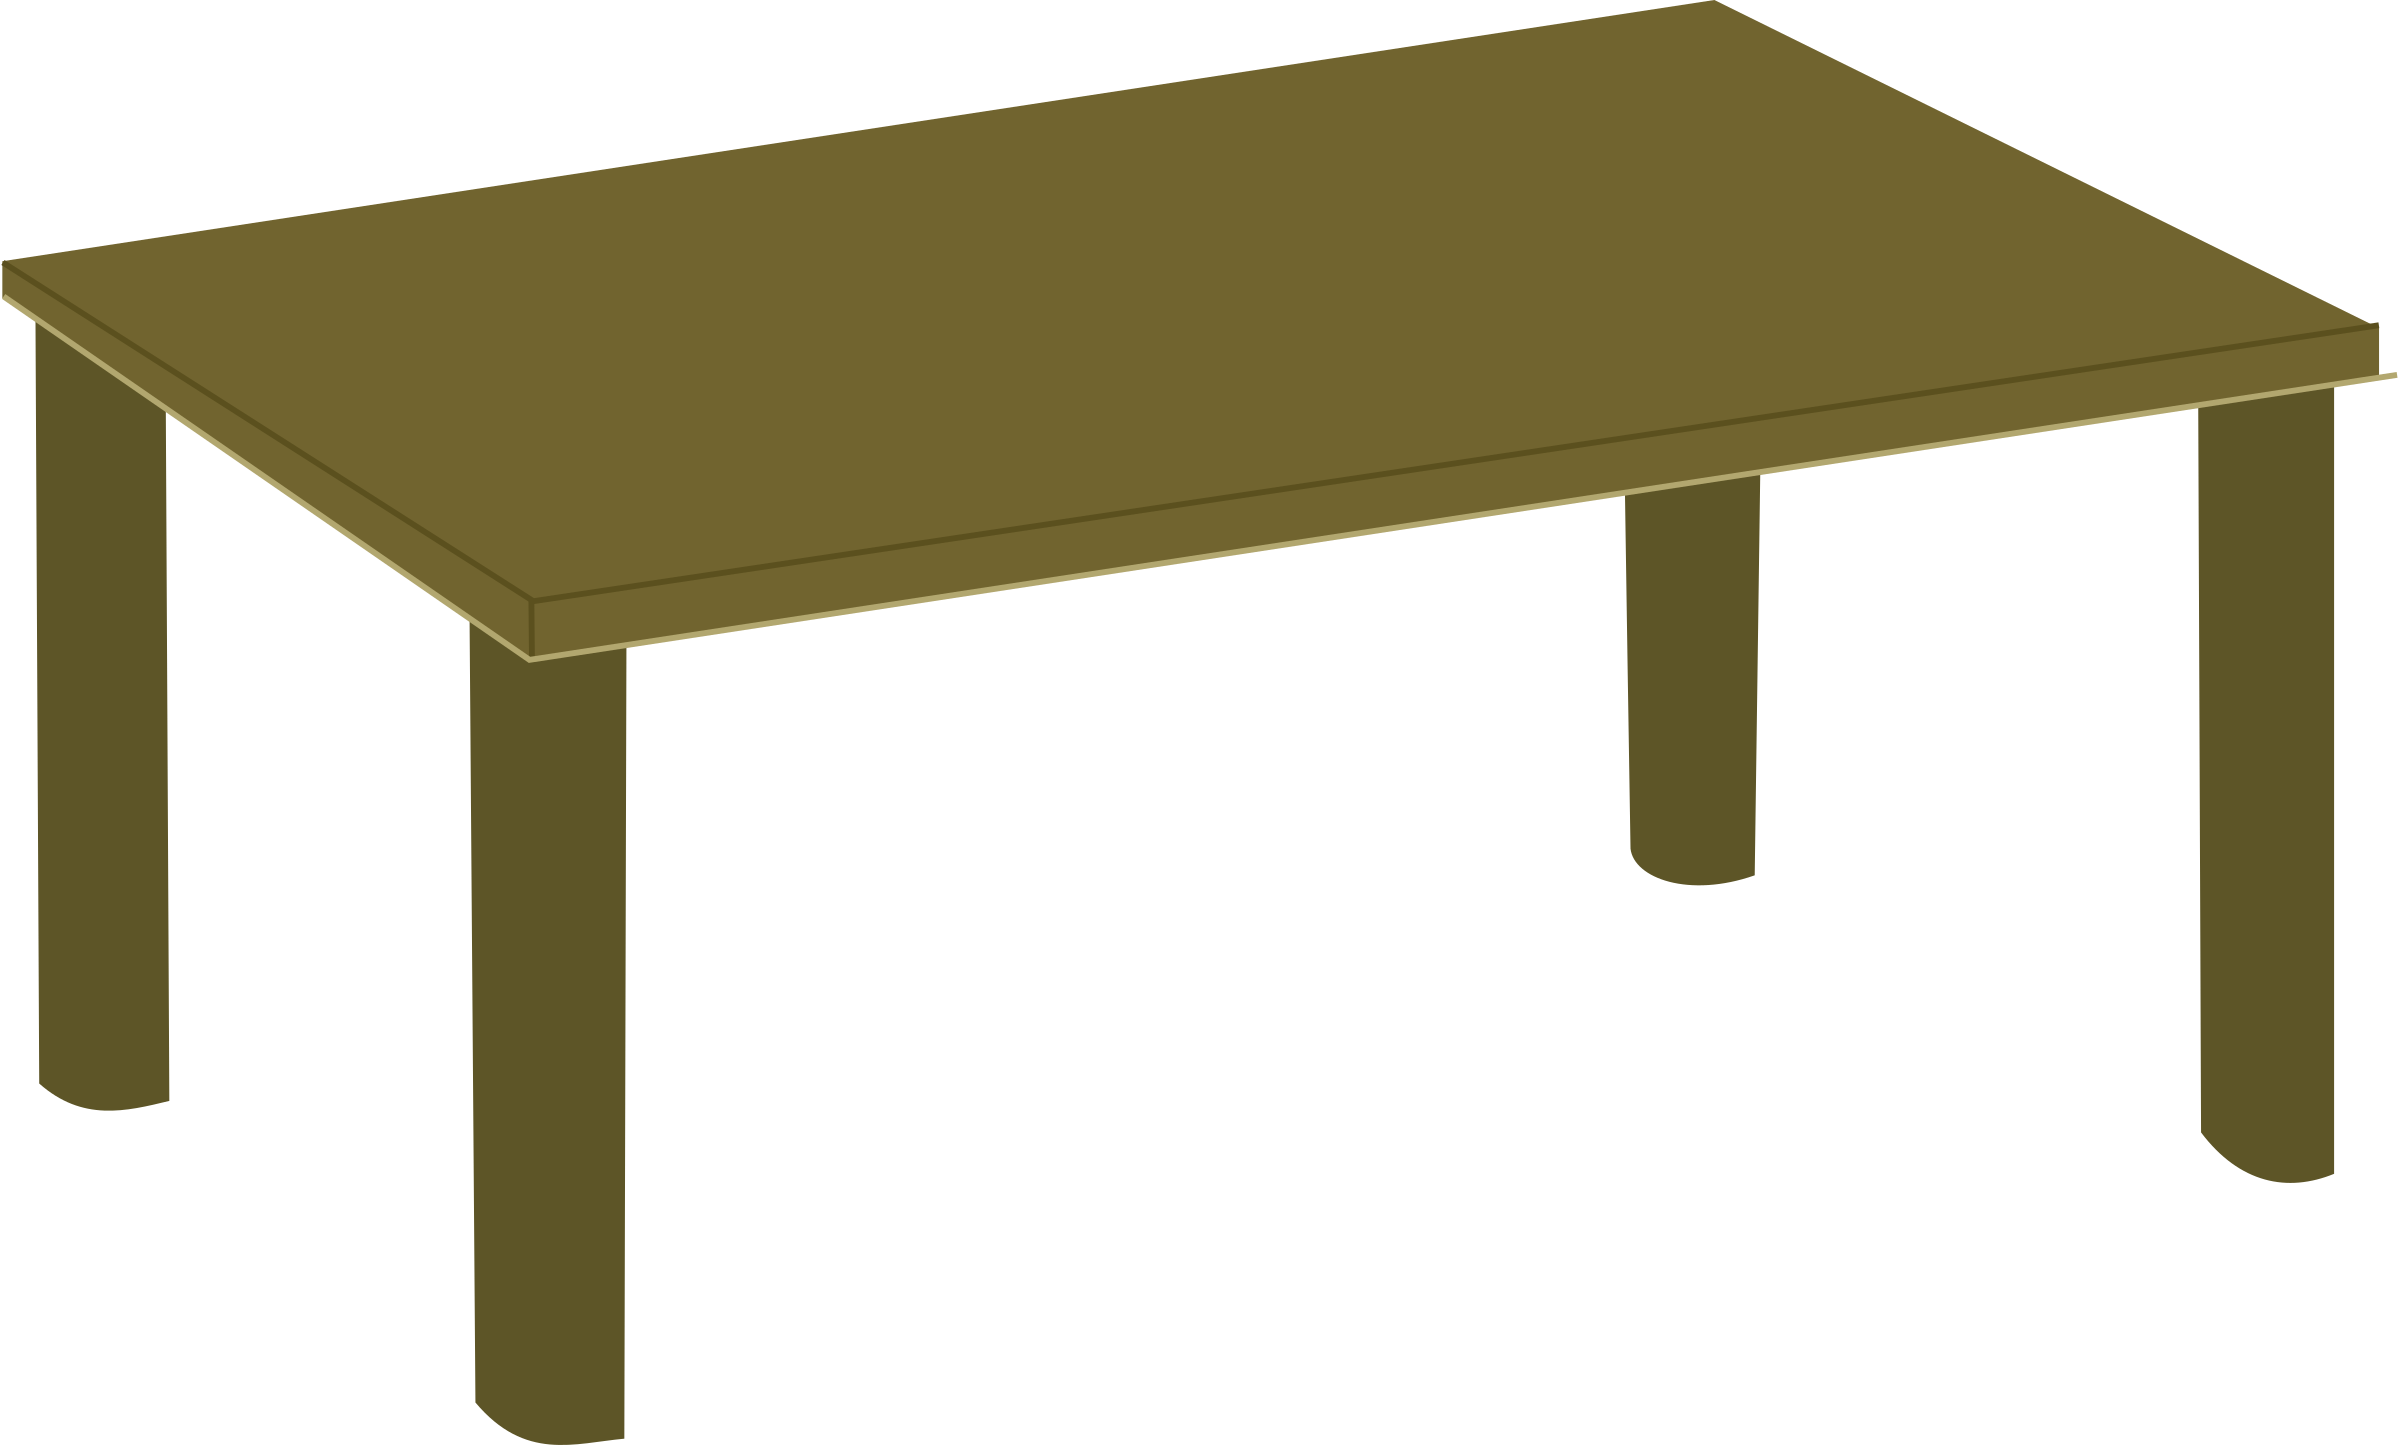 Furniture clipart animated. Wooden table agreeable wood